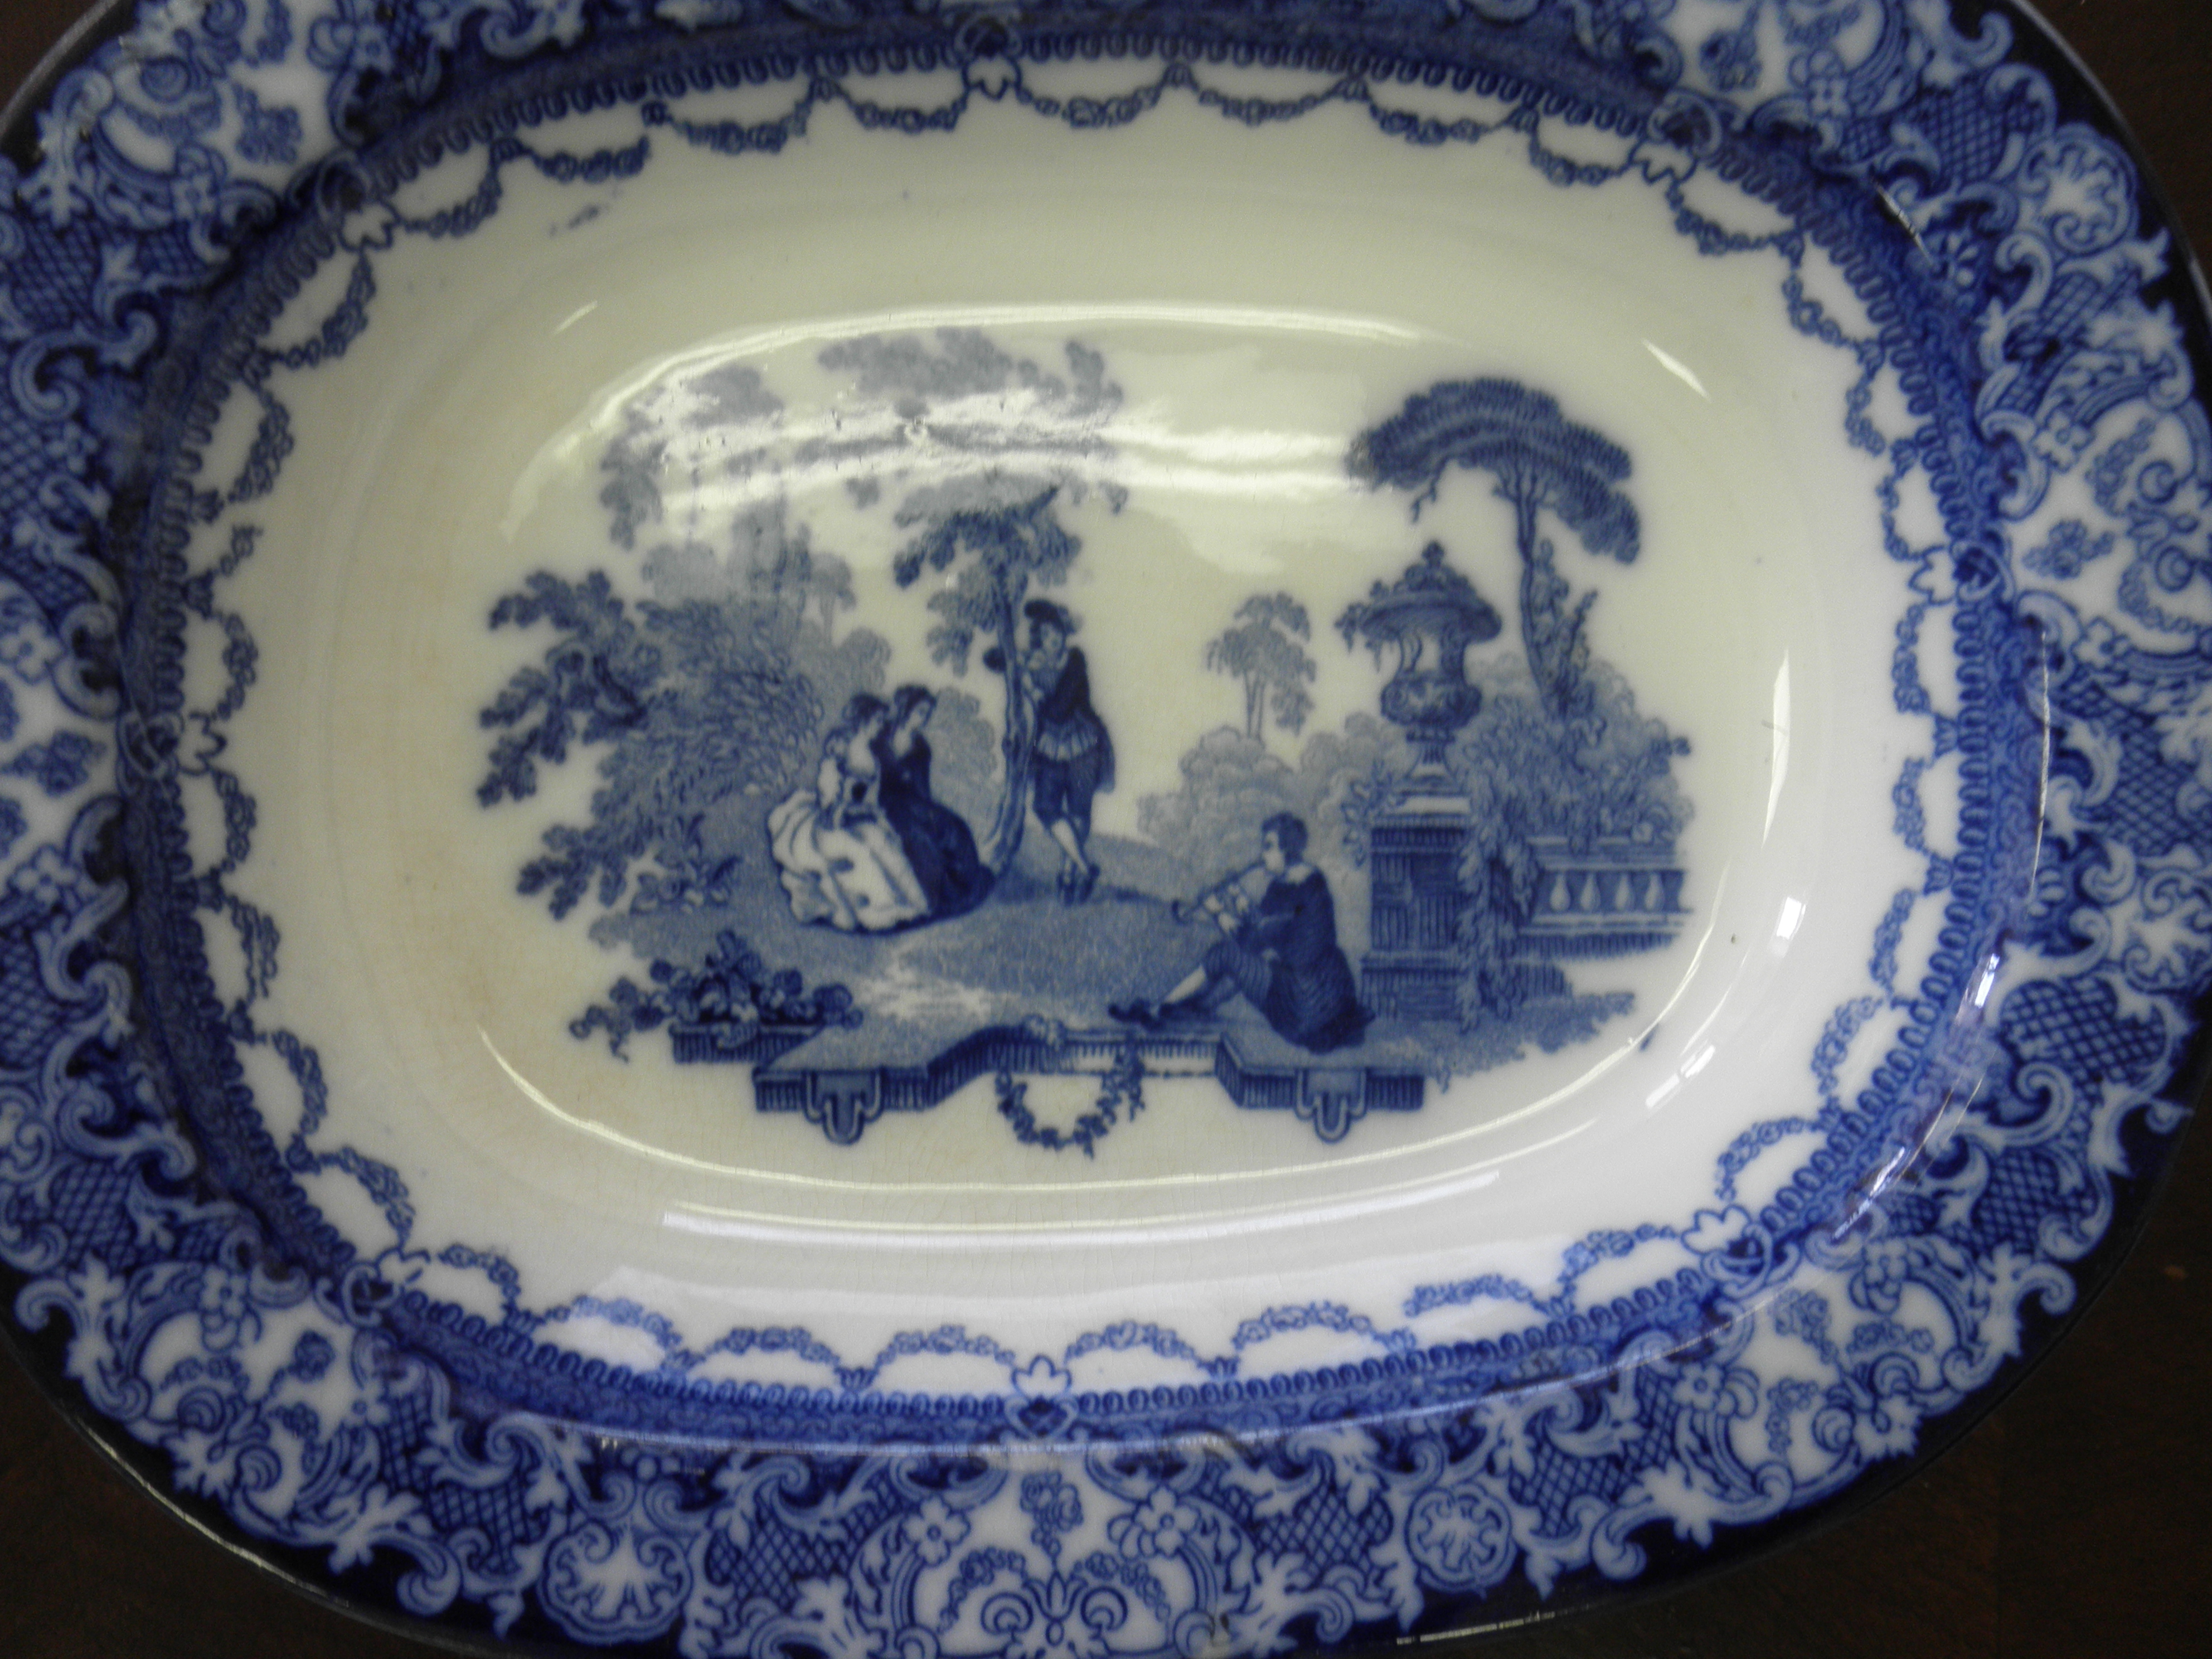 Vintage dishes lookup beforebuying for Most valuable antiques to look for